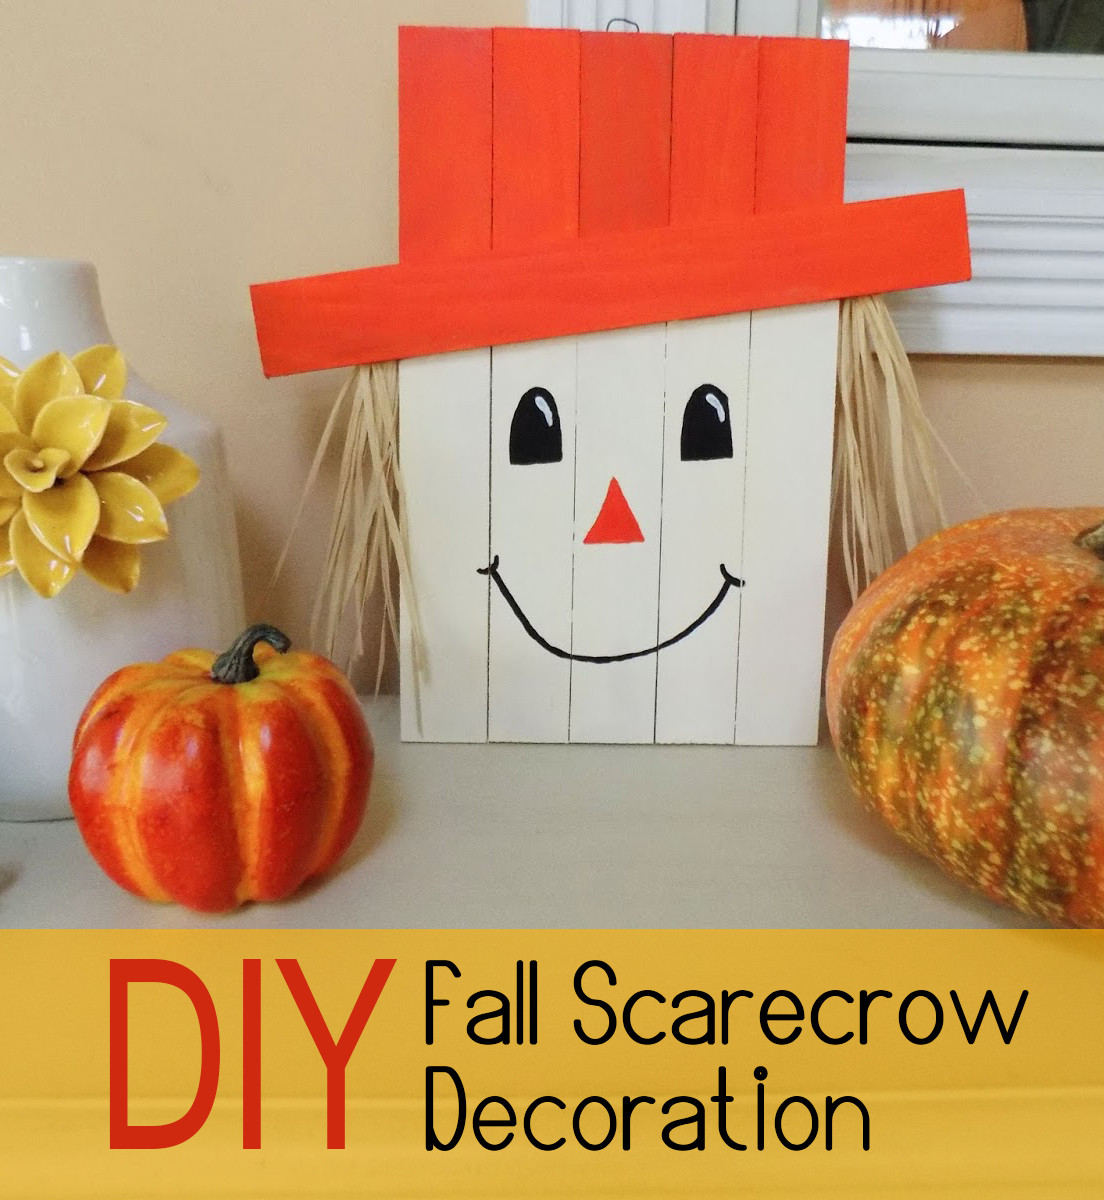 Best ideas about Fall Craft Ideas . Save or Pin 28 Best DIY Fall Craft Ideas and Decorations for 2016 Now.